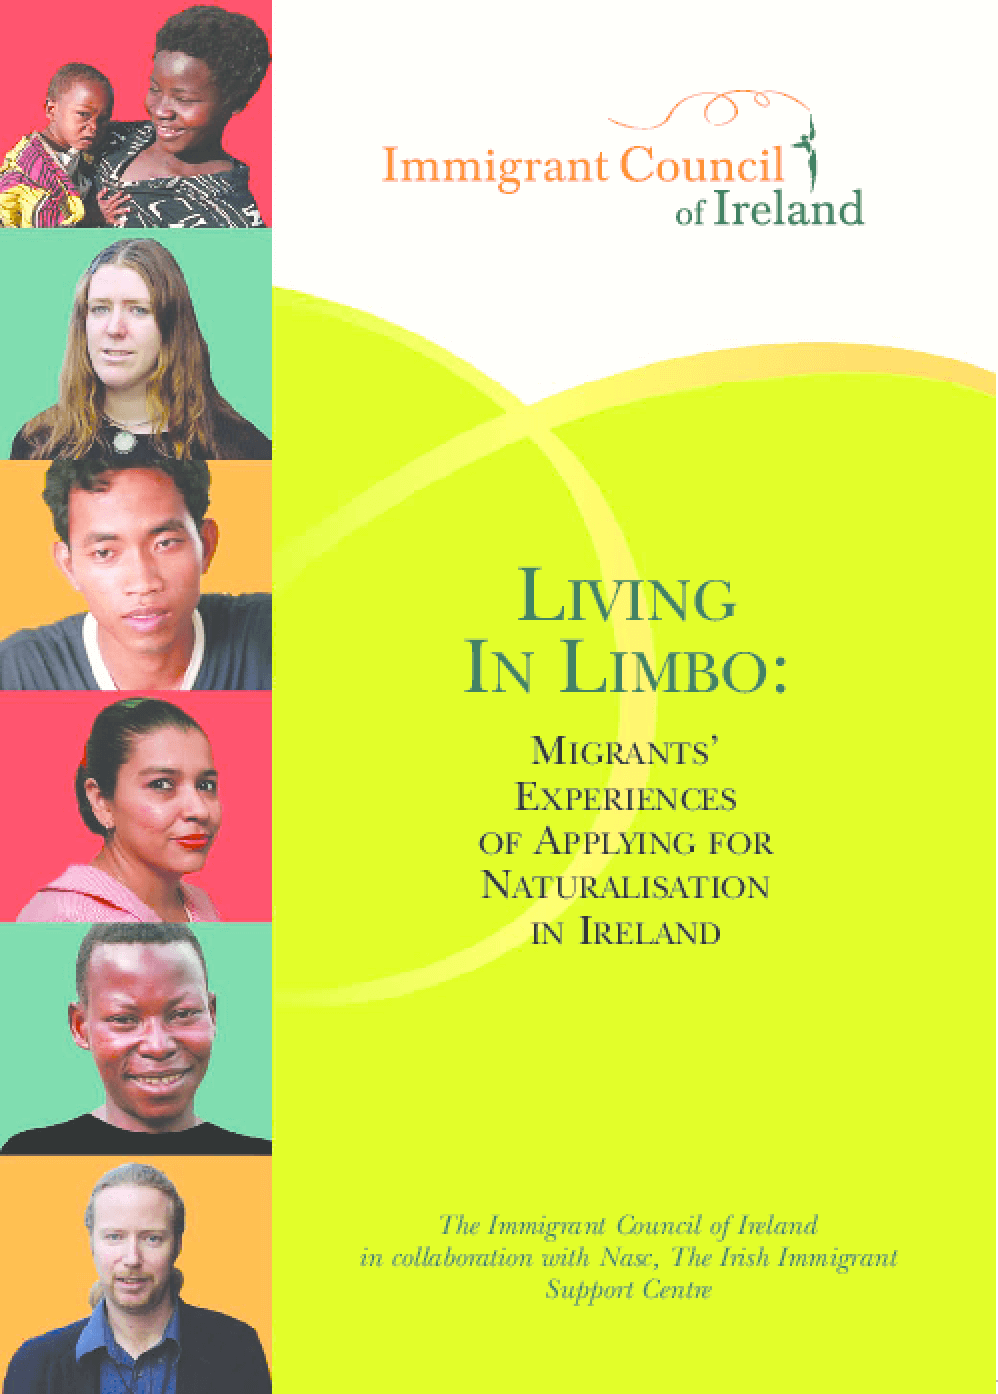 Living in Limbo: Migrant's Experiences of Applying for Naturalisation in Ireland